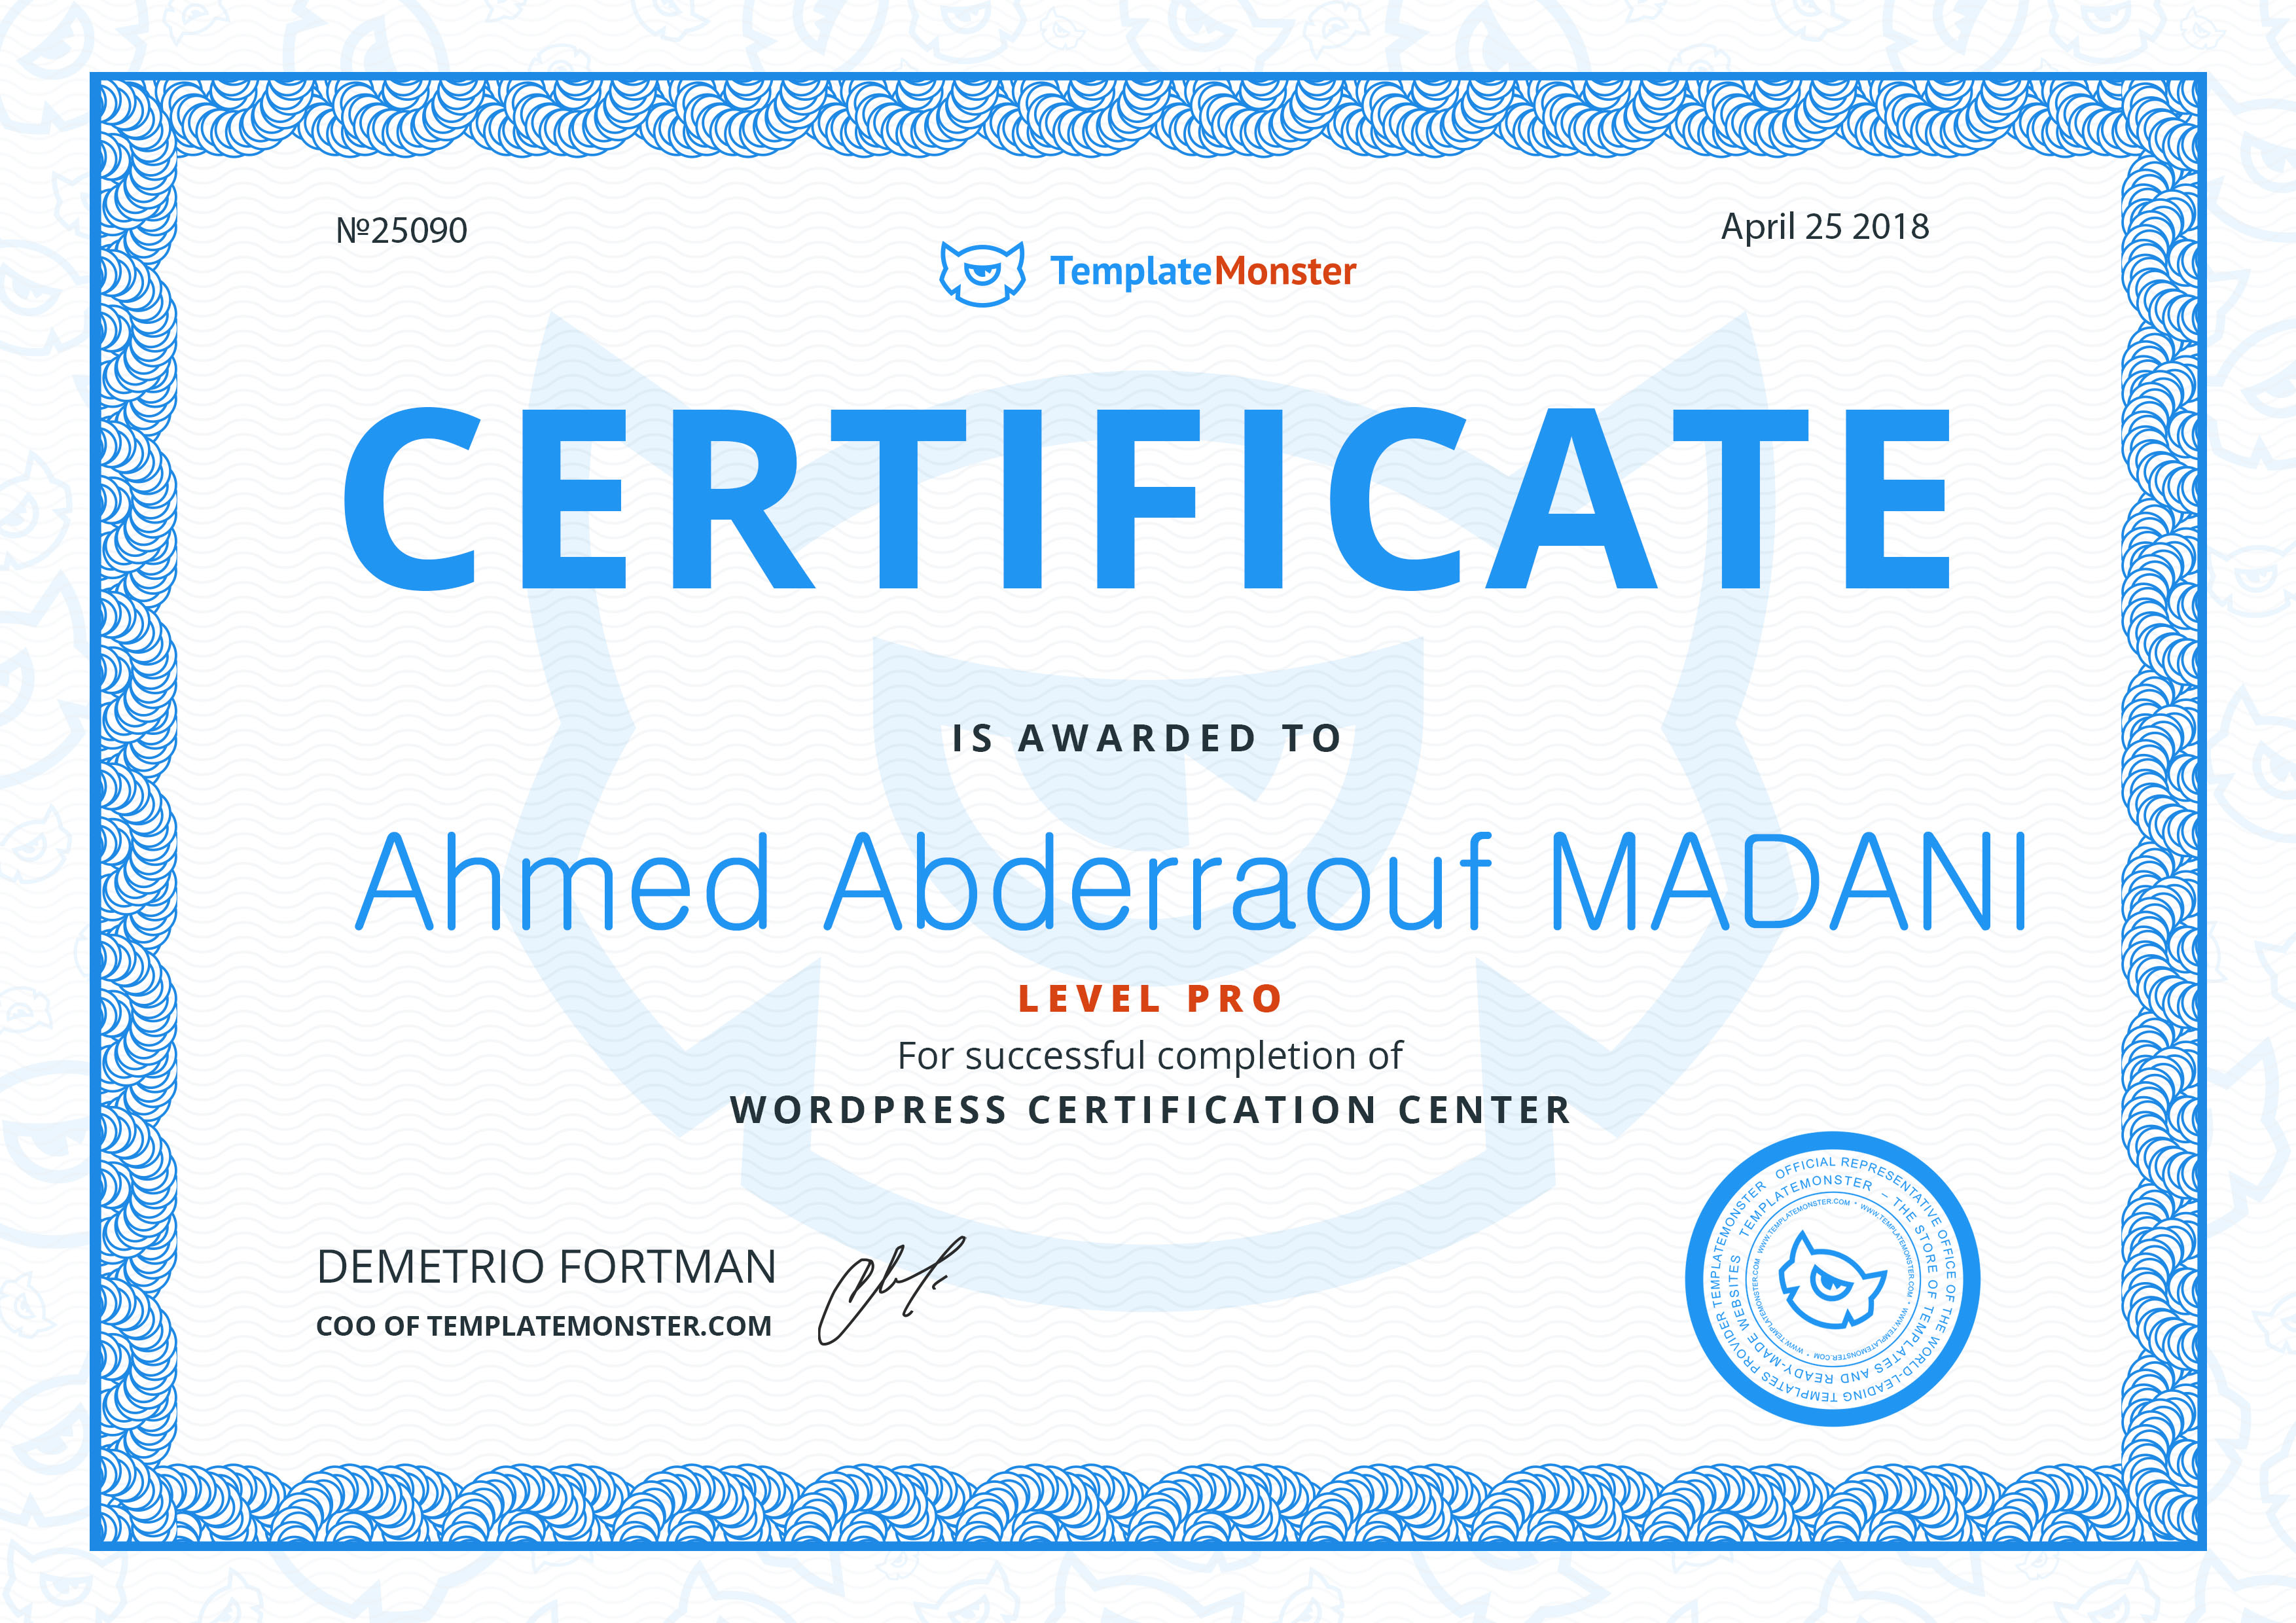 Successful Completion of Wordpress Certification Center LEVEL PRO